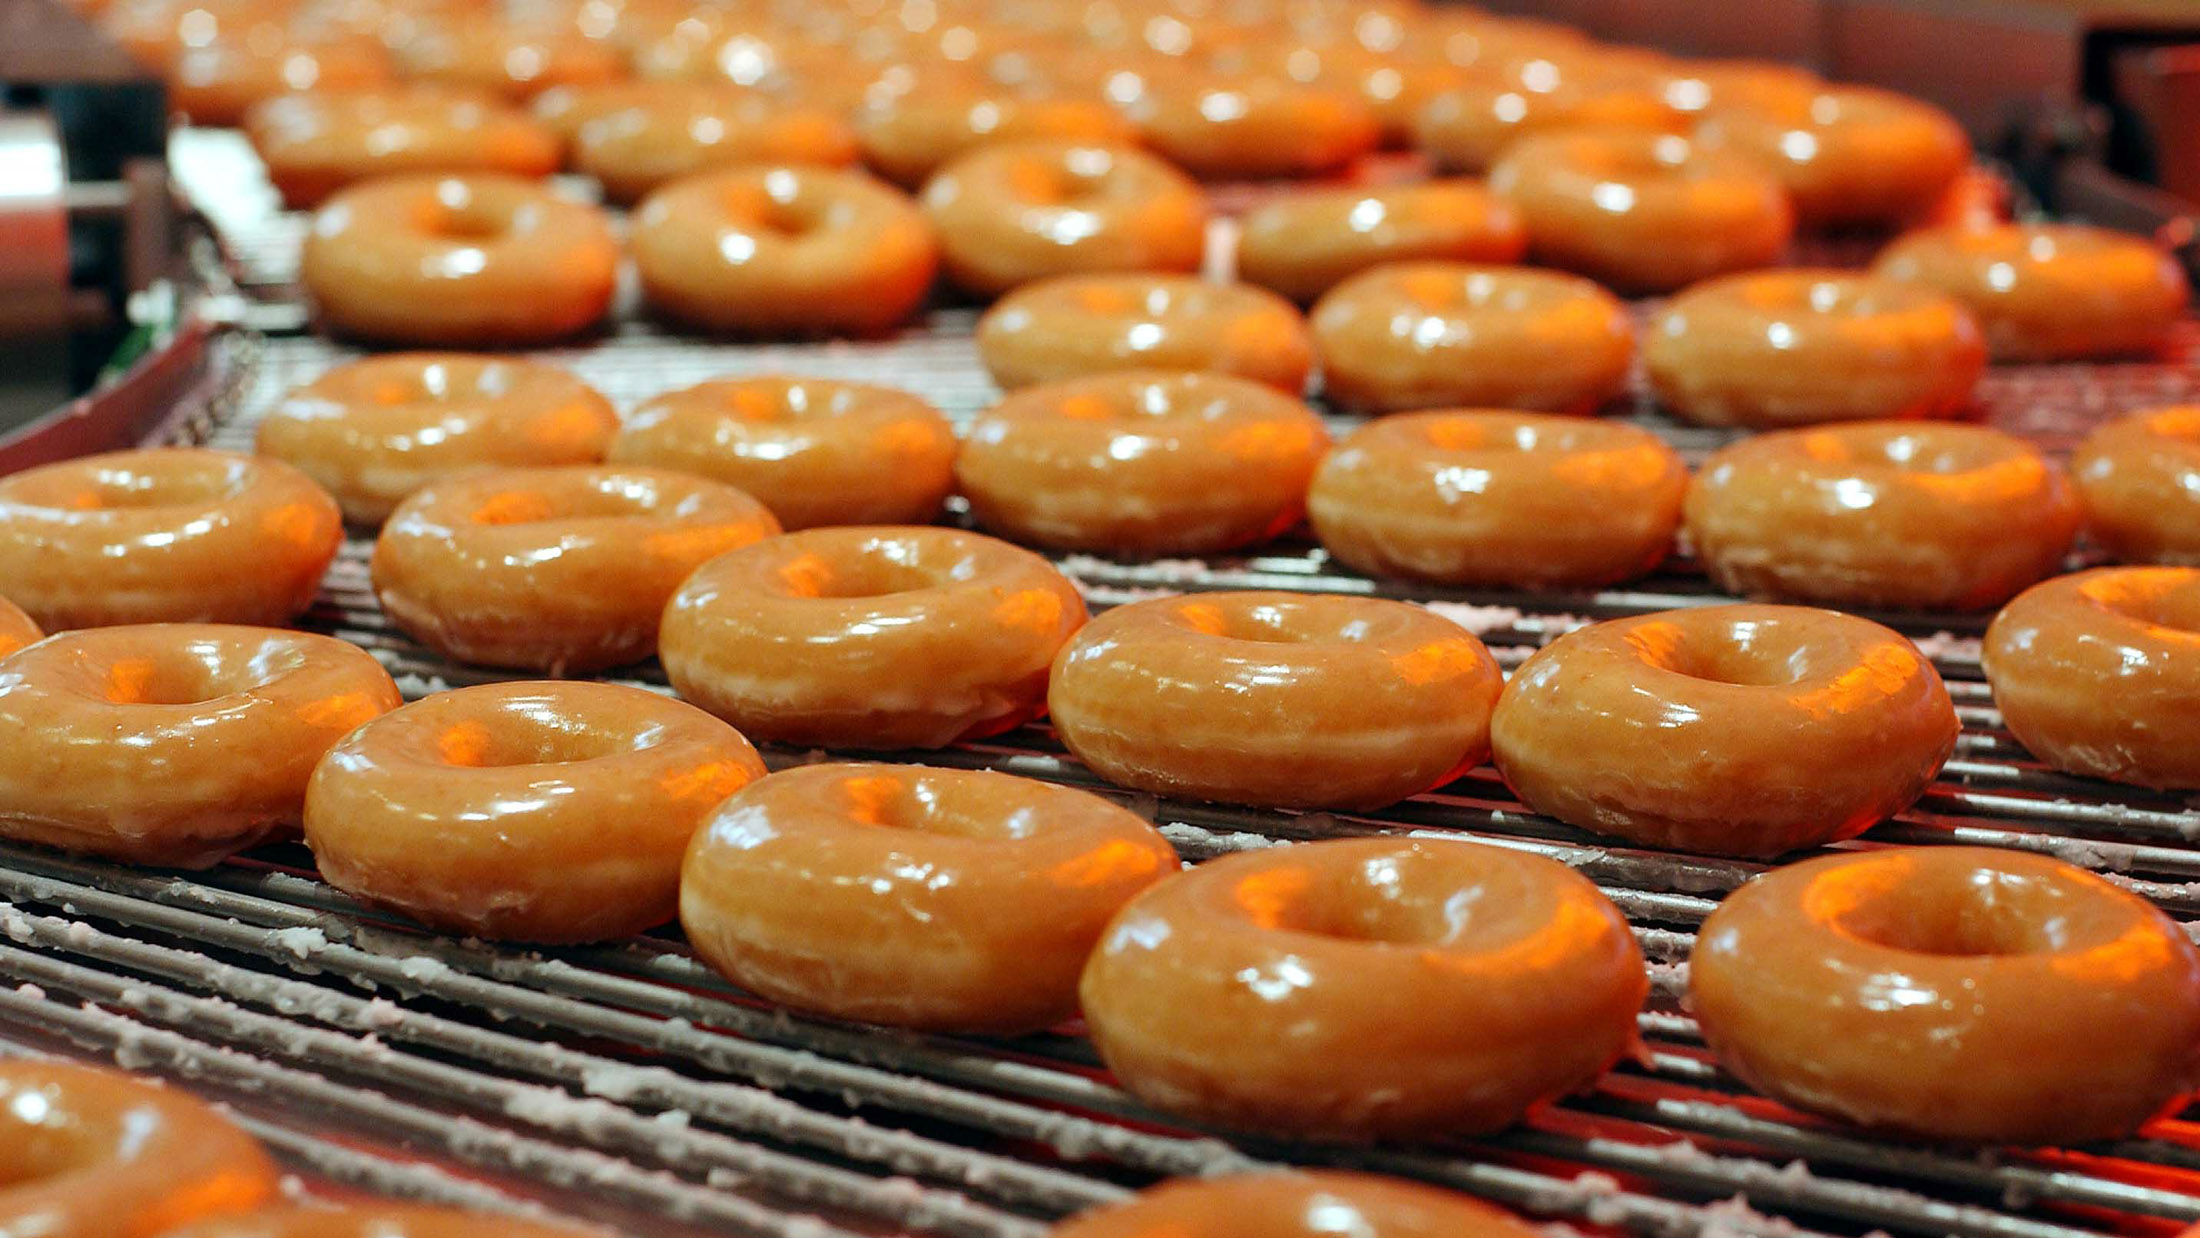 Krispy Kreme doughnuts go into production at the opening of the store at Harrods in London, October, 3, 2003. The U.S. chain opened its first European outlet in London on Friday.